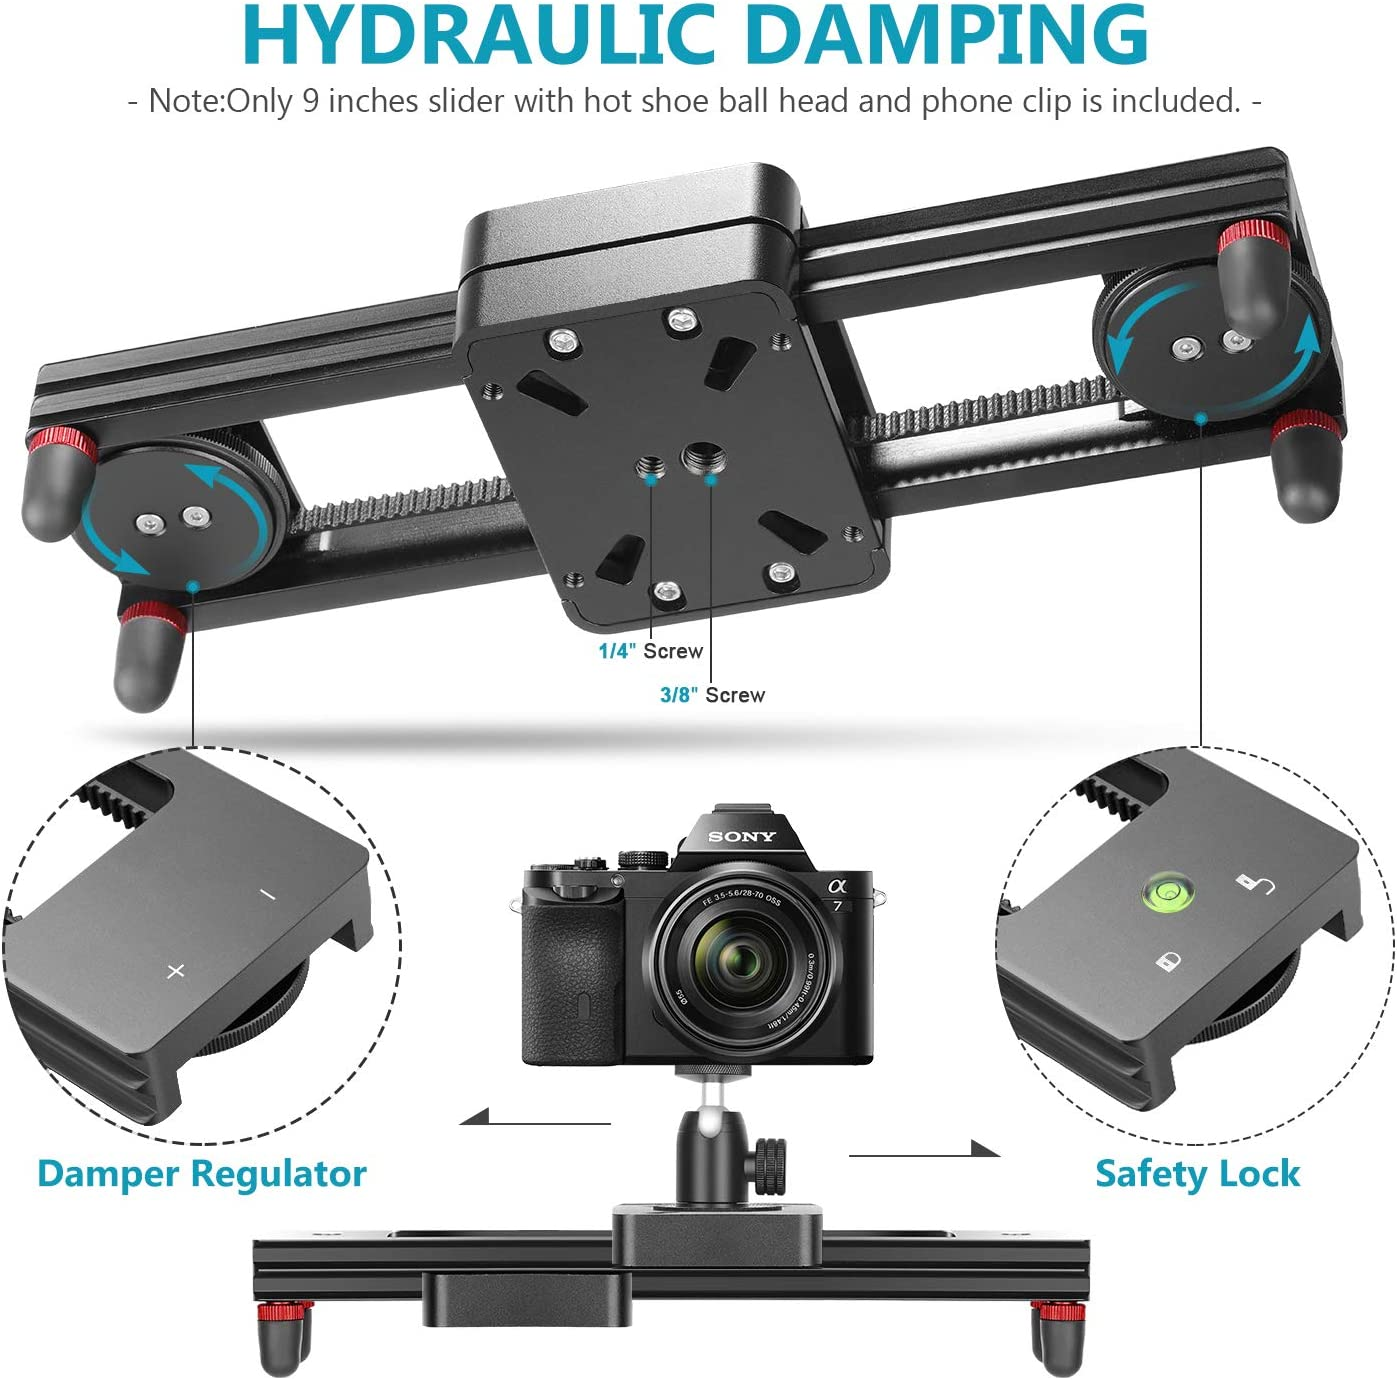 Neewer Camera Slider Carbon Fiber Dolly Rail 19.7 inches//50 Centimeters with 4 Bearings for Smartphone Nikon Canon Sony Camera 12lbs Loading